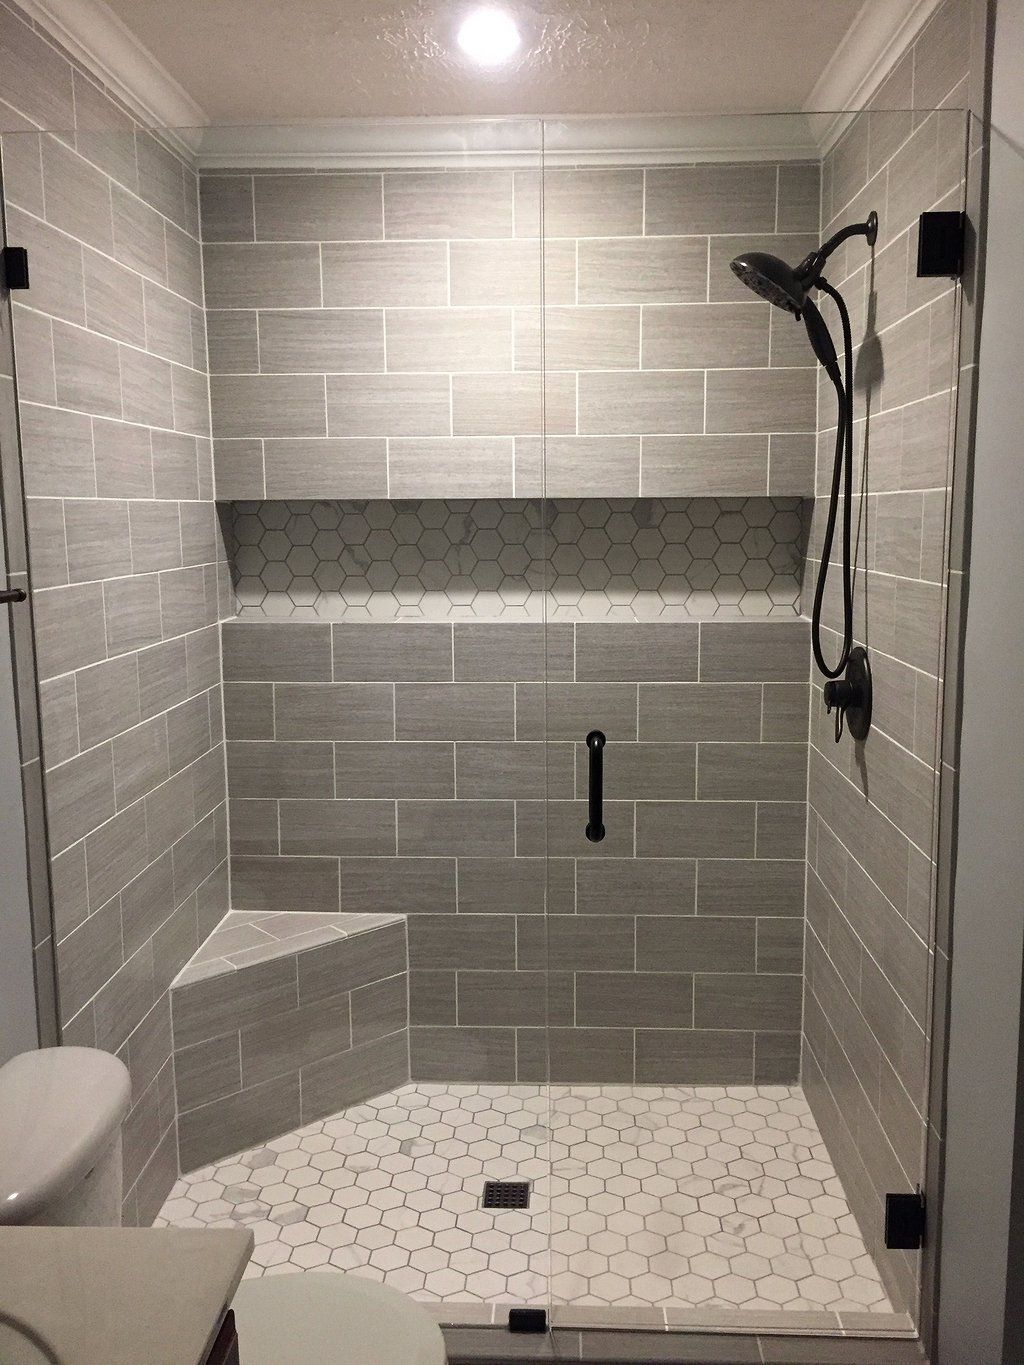 Gray Bathroom Ideas Gray Bathroom Photos Terrific Design Ideas As Well As Bathroom Design I Bathrooms Remodel Small Bathroom Remodel Bathroom Remodel Master